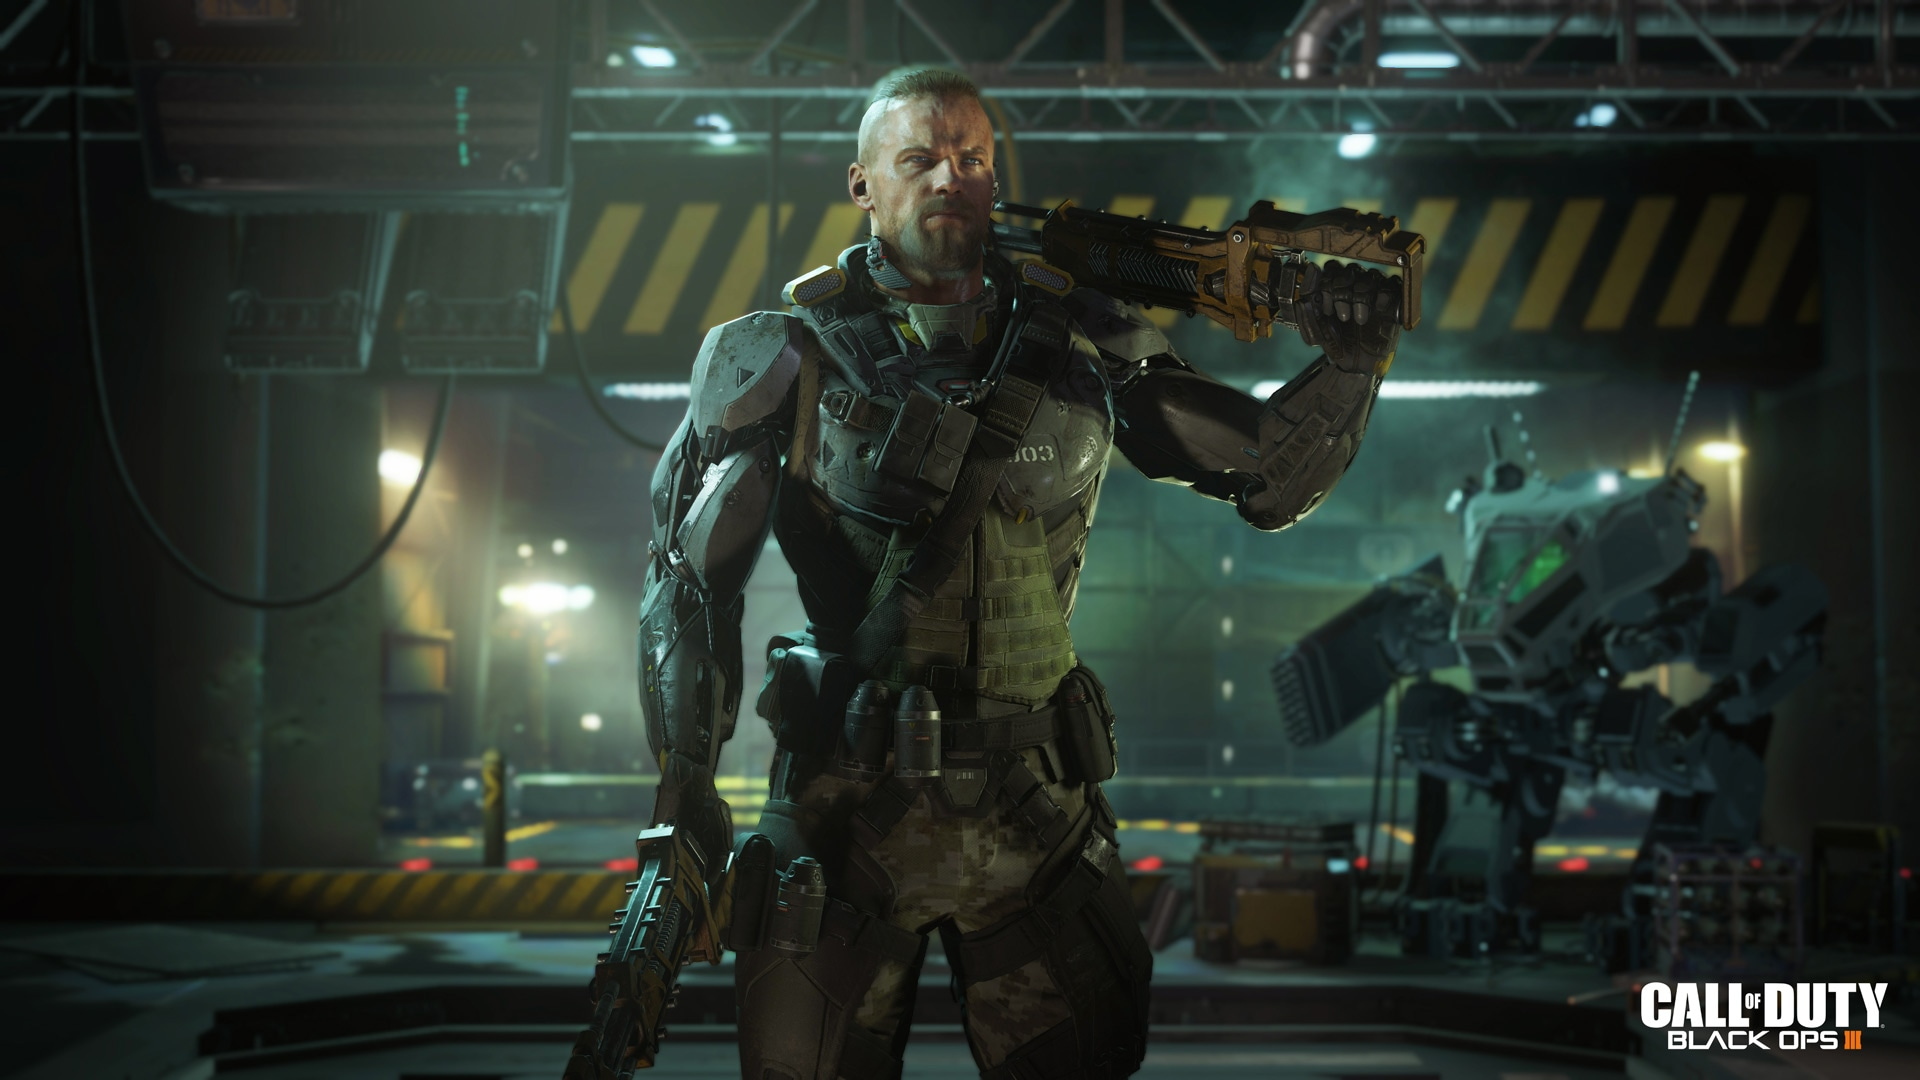 Call Of Duty Black Ops 4 Characters 551784 Hd Wallpaper